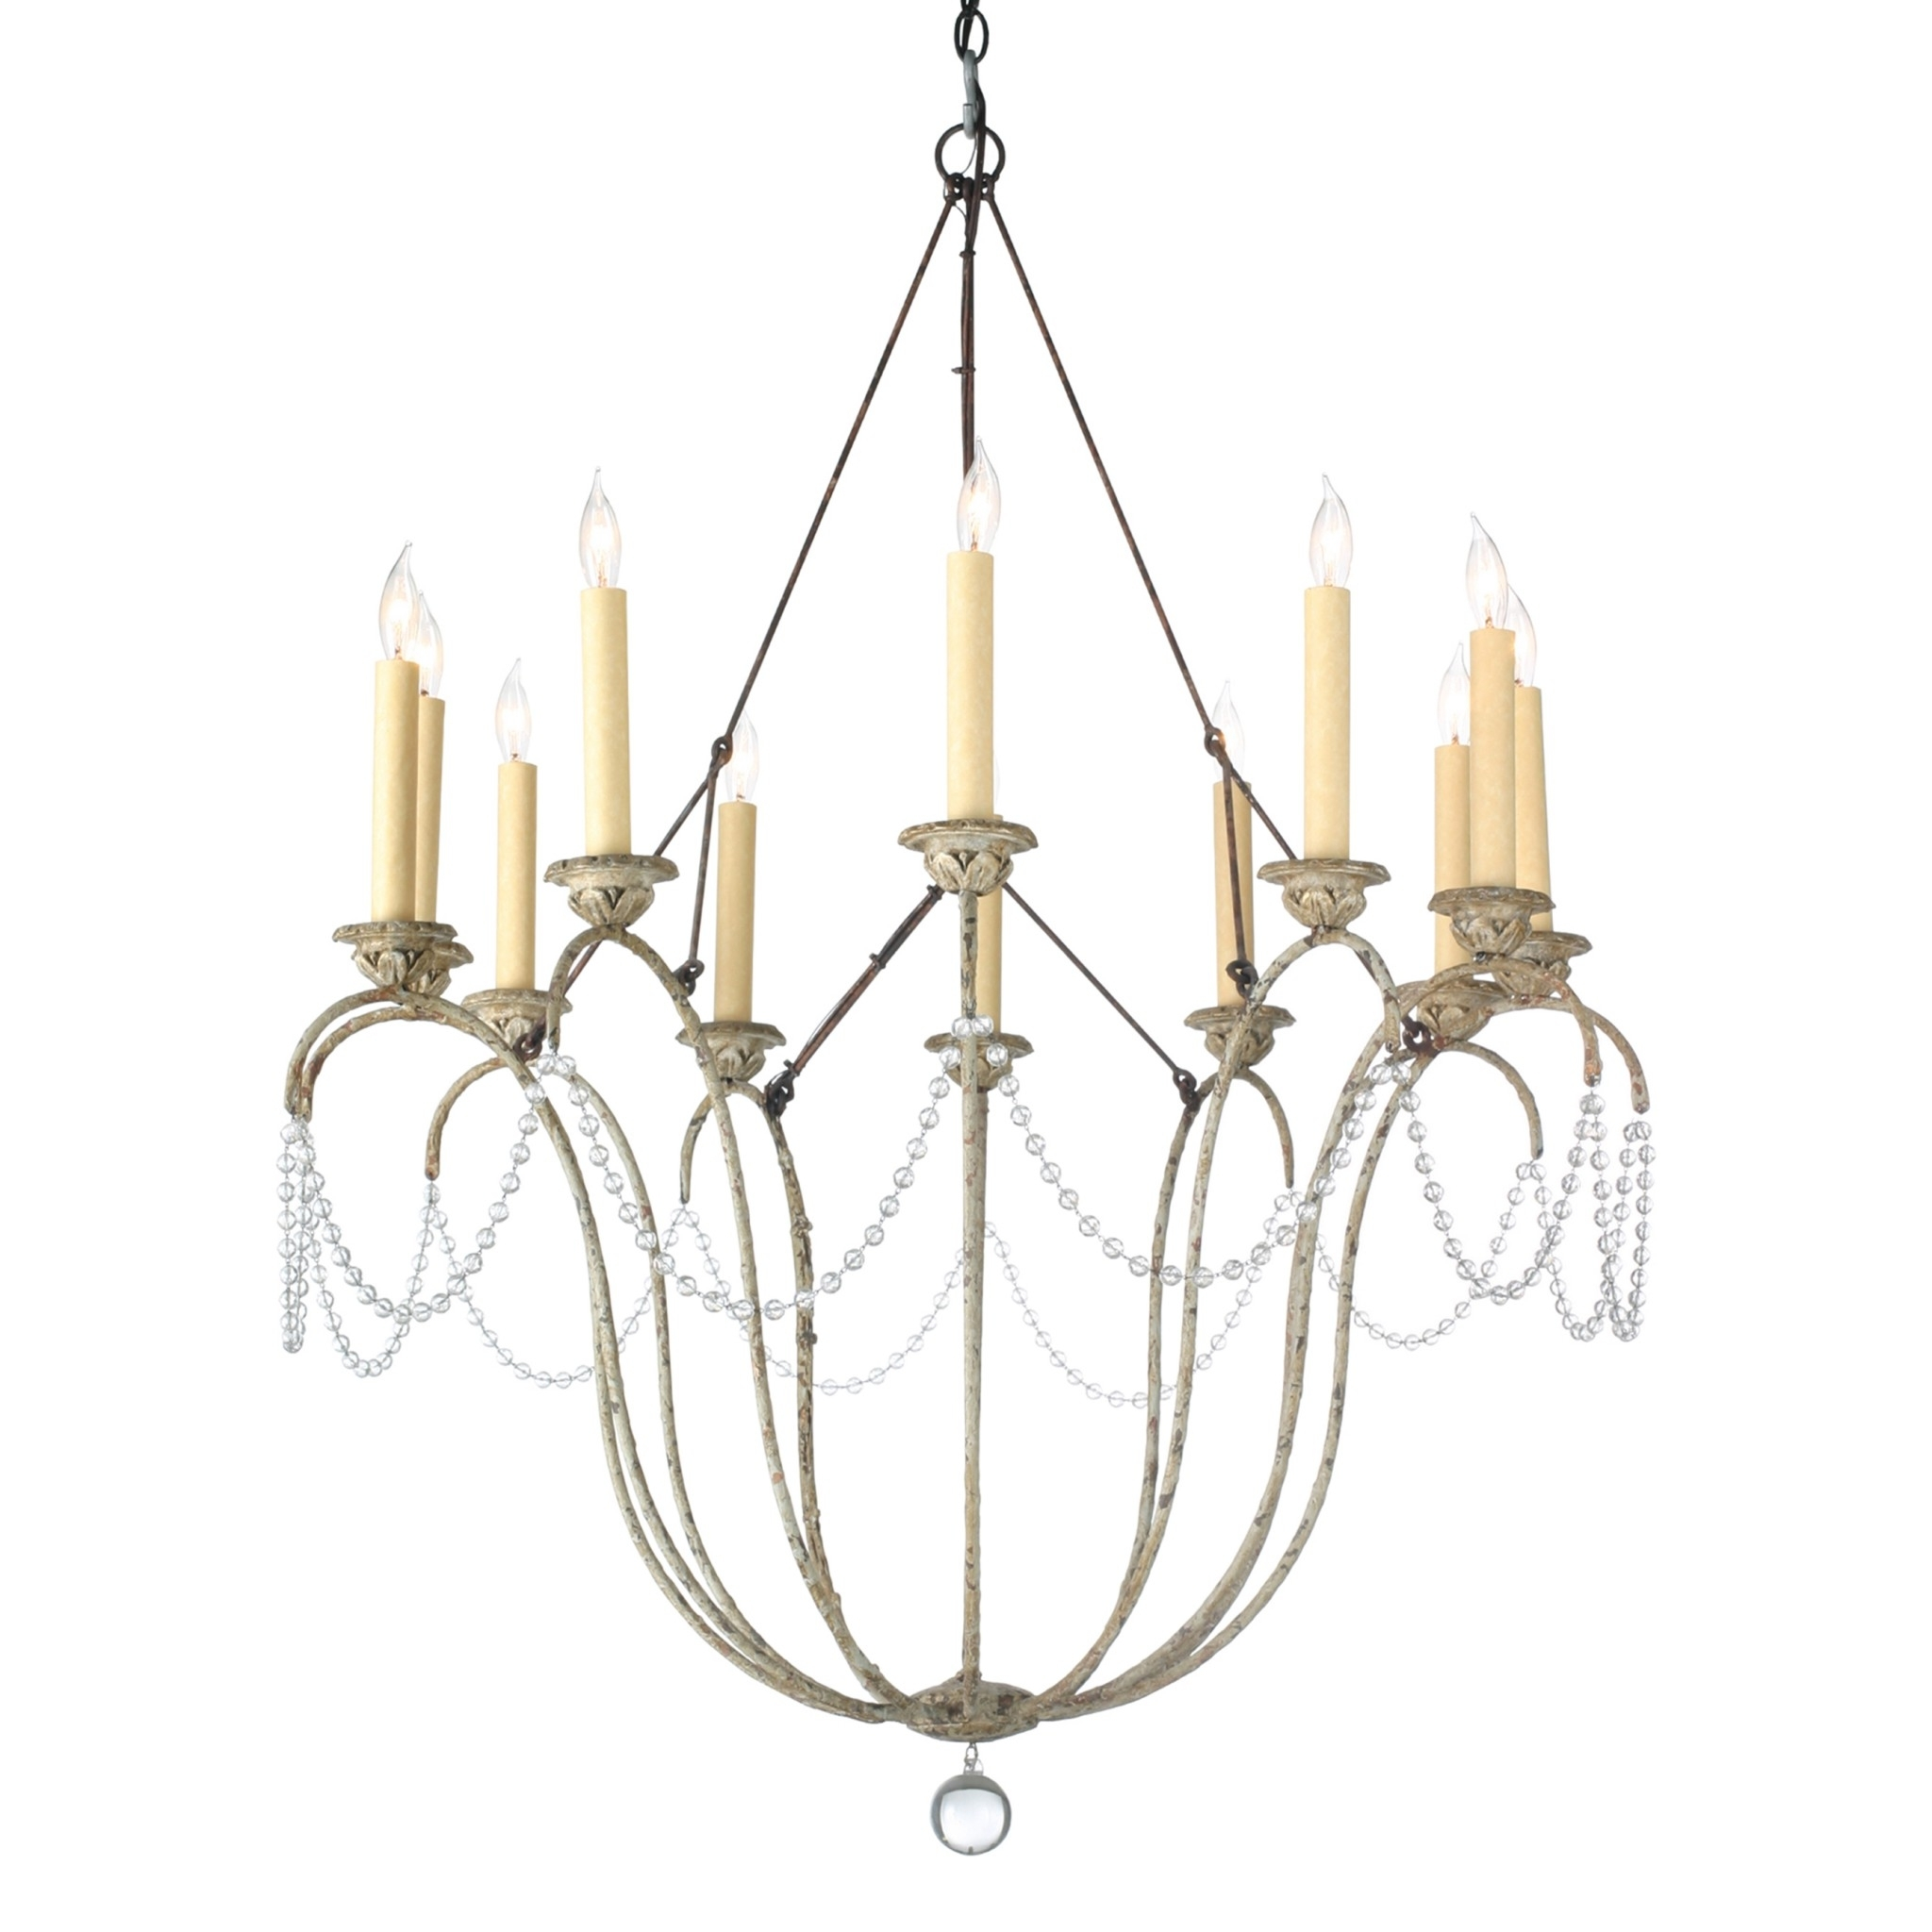 Most Recent Italian Chandeliers Contemporary For Italian Chandelier (View 12 of 15)